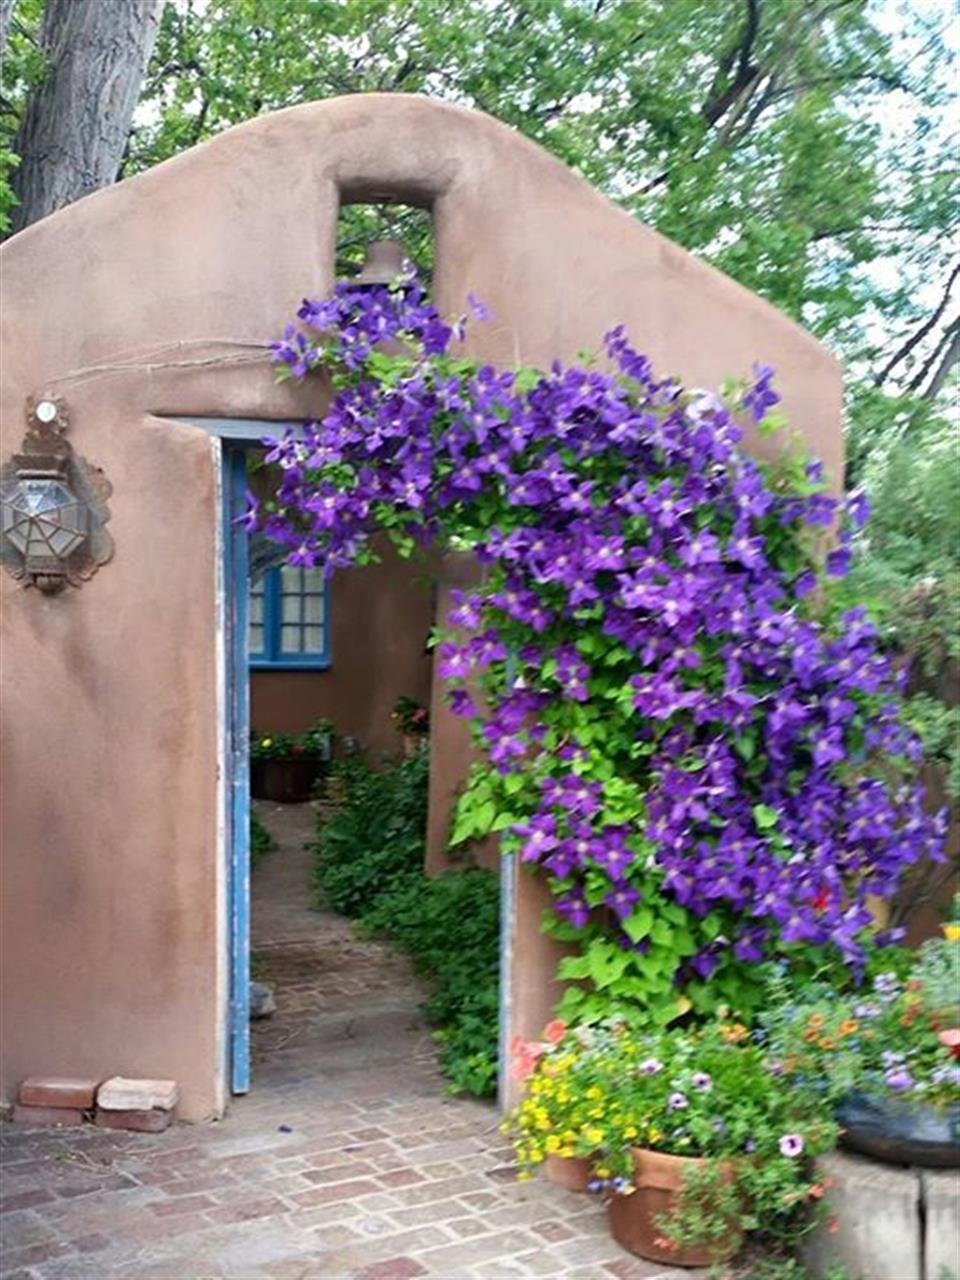 Sweet little adobe entrance in Santa Fe. A cool 70 degrees and cloudy this morning. Perfect temp. for July